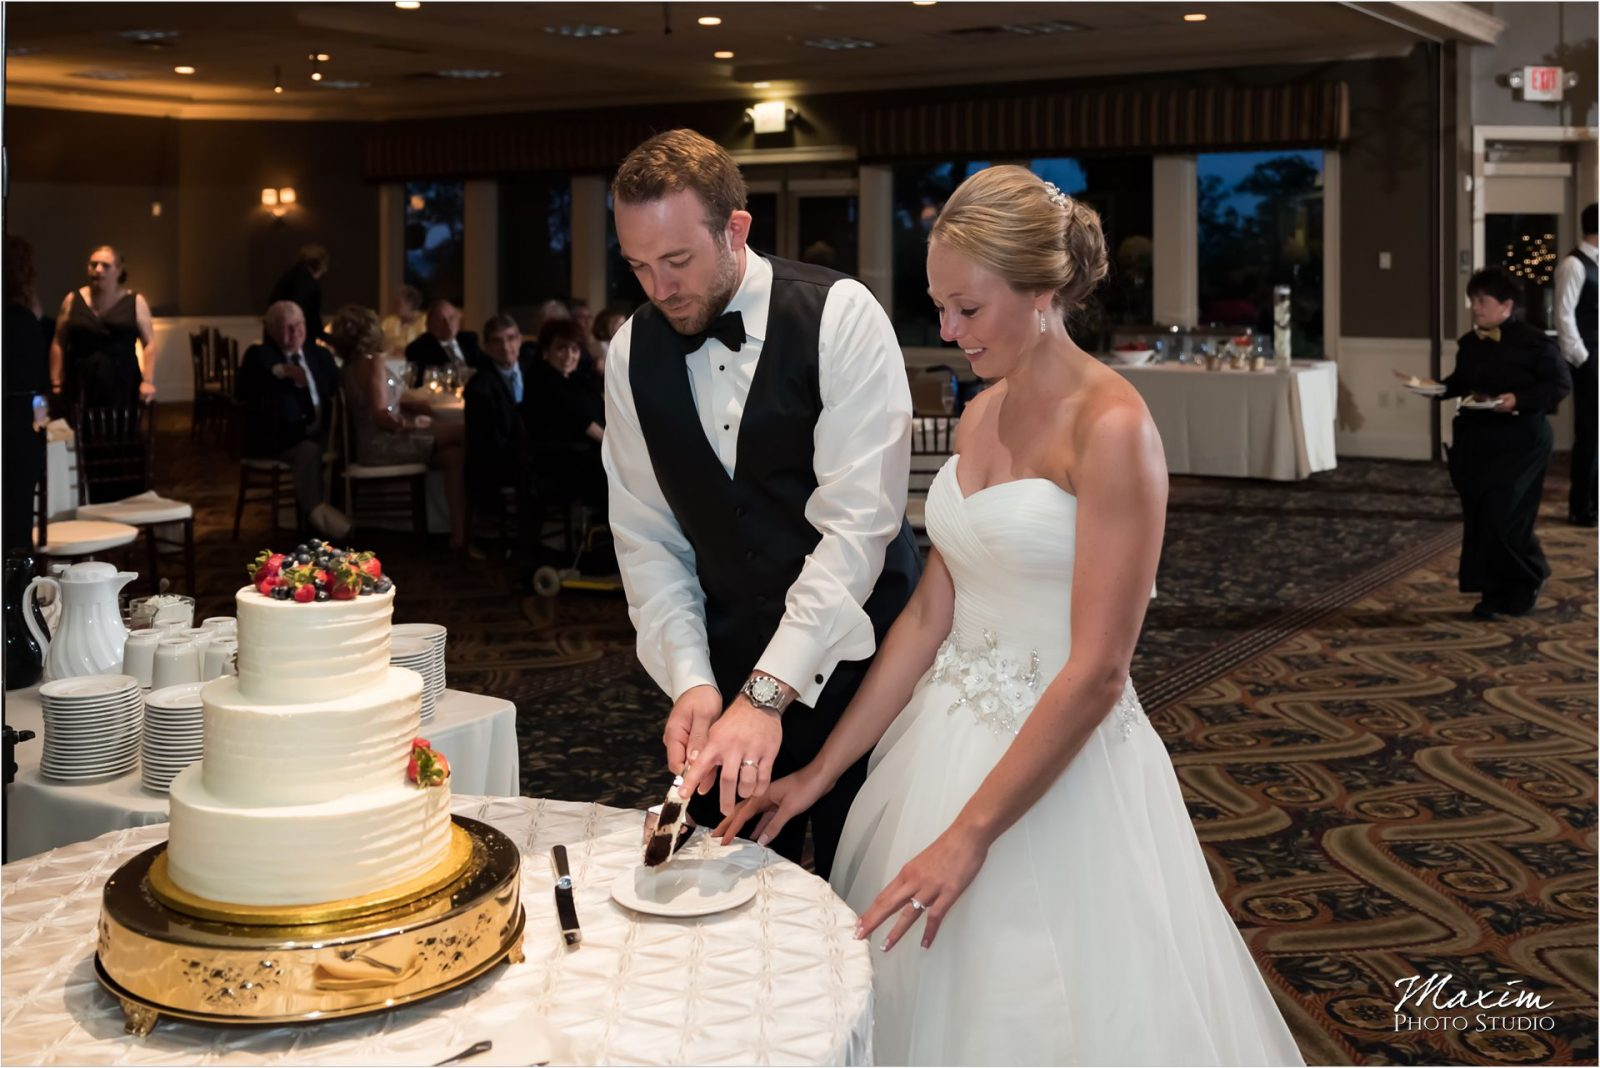 Drees Pavilion Covington Kentucky Wedding Reception Cake Cutting